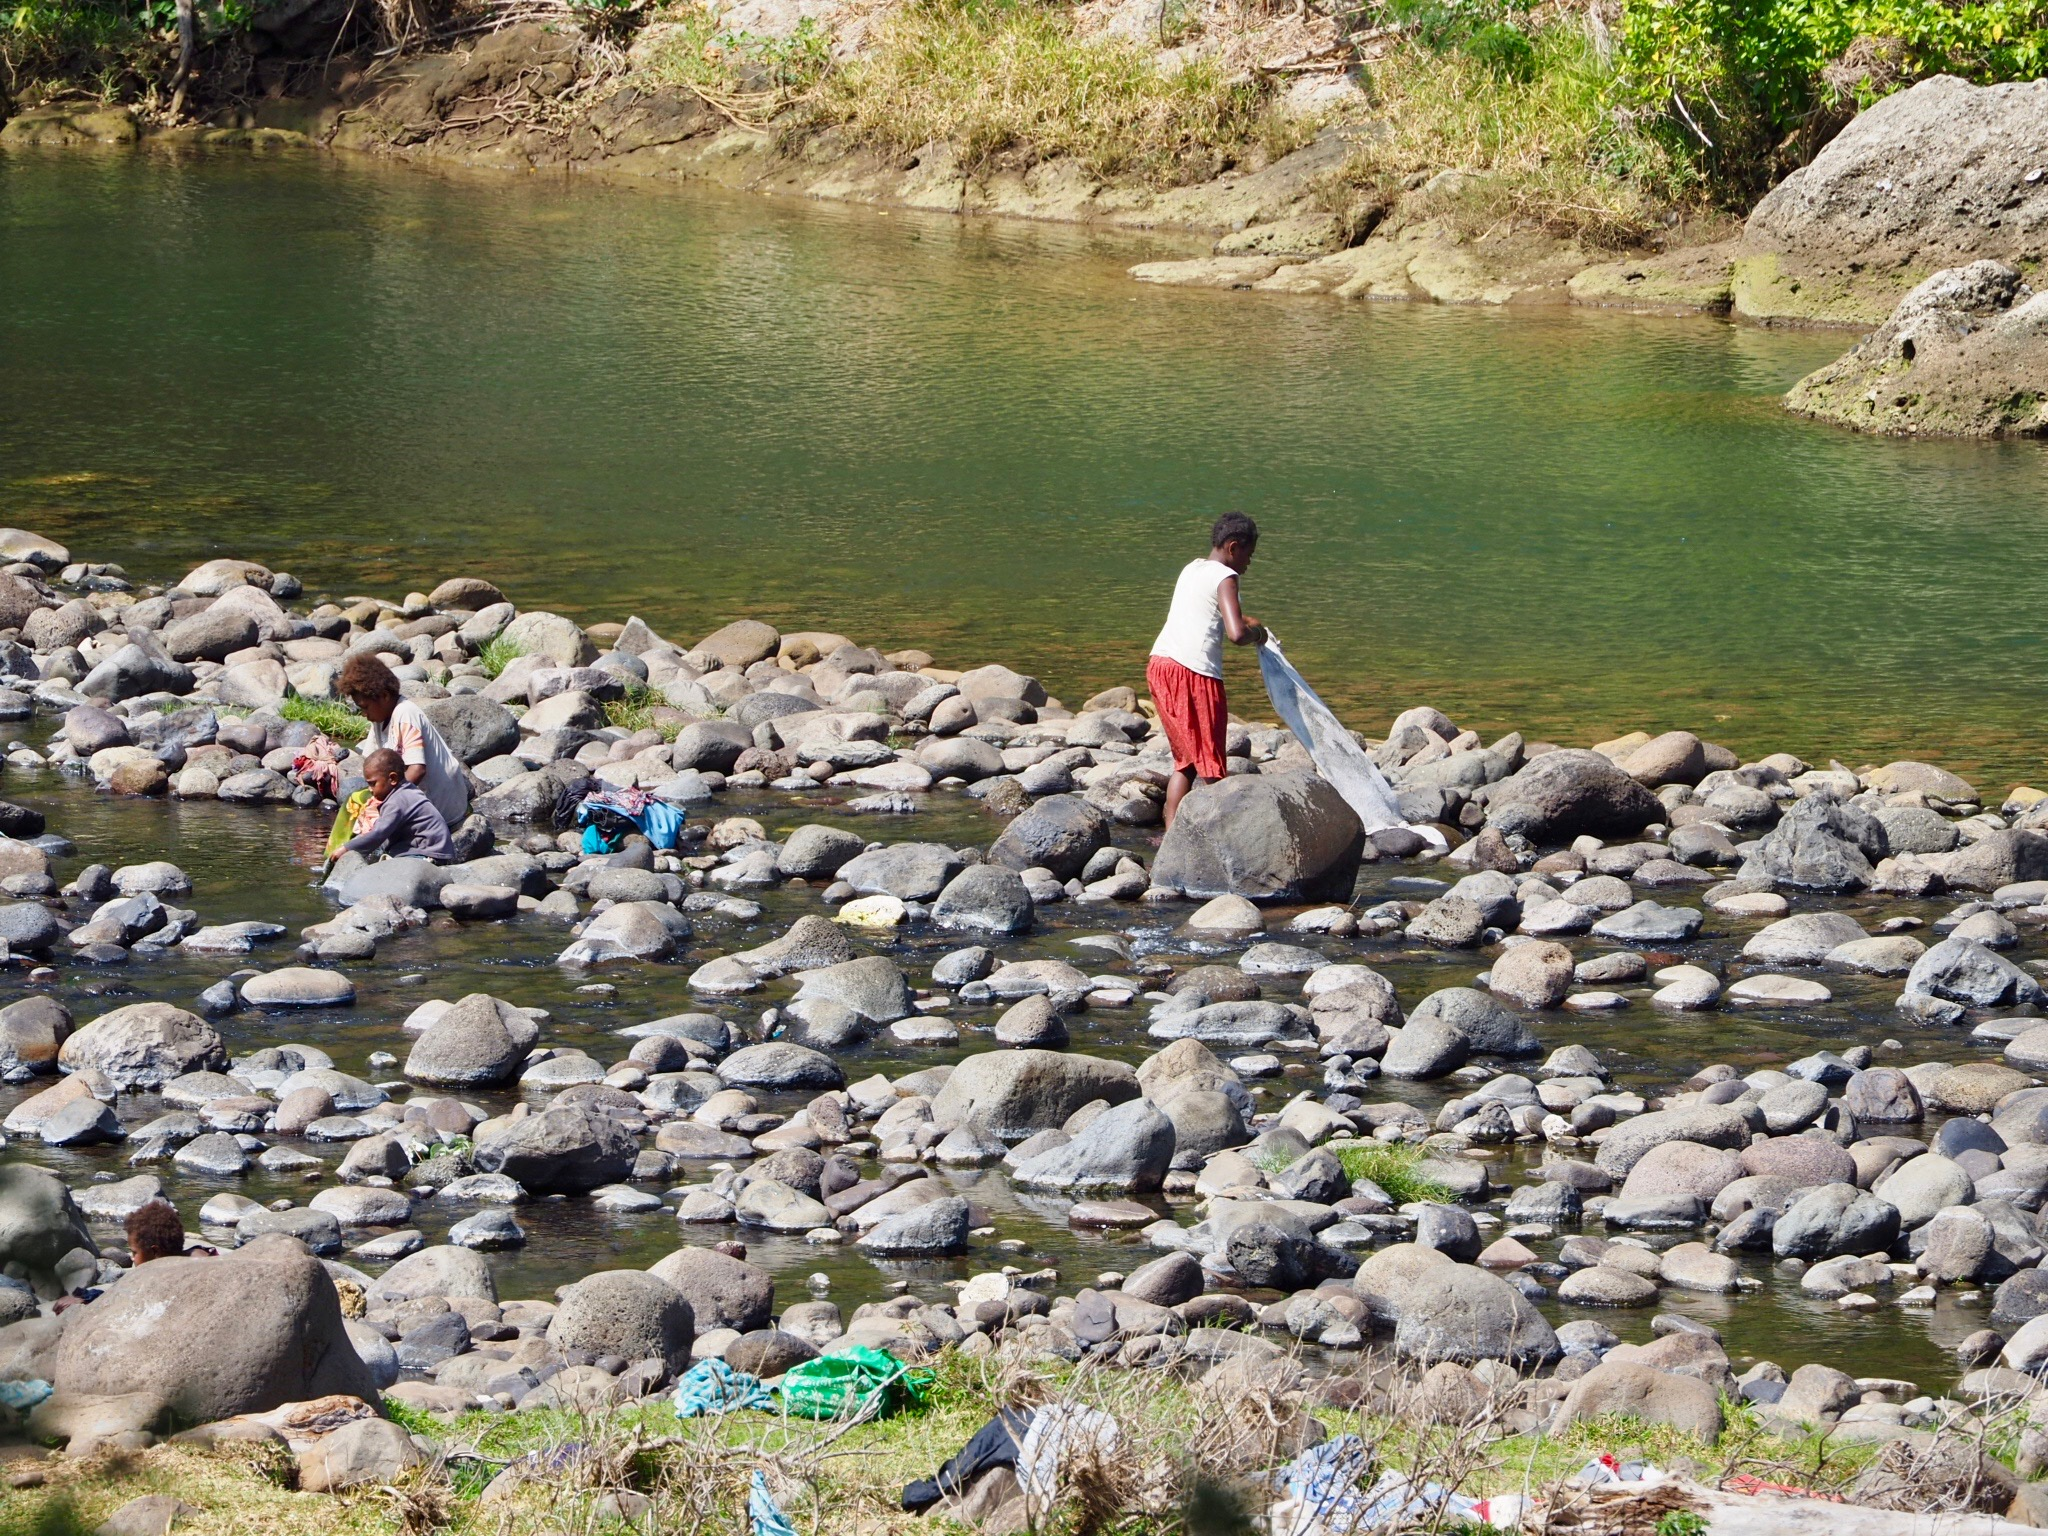 Daily washing in the river